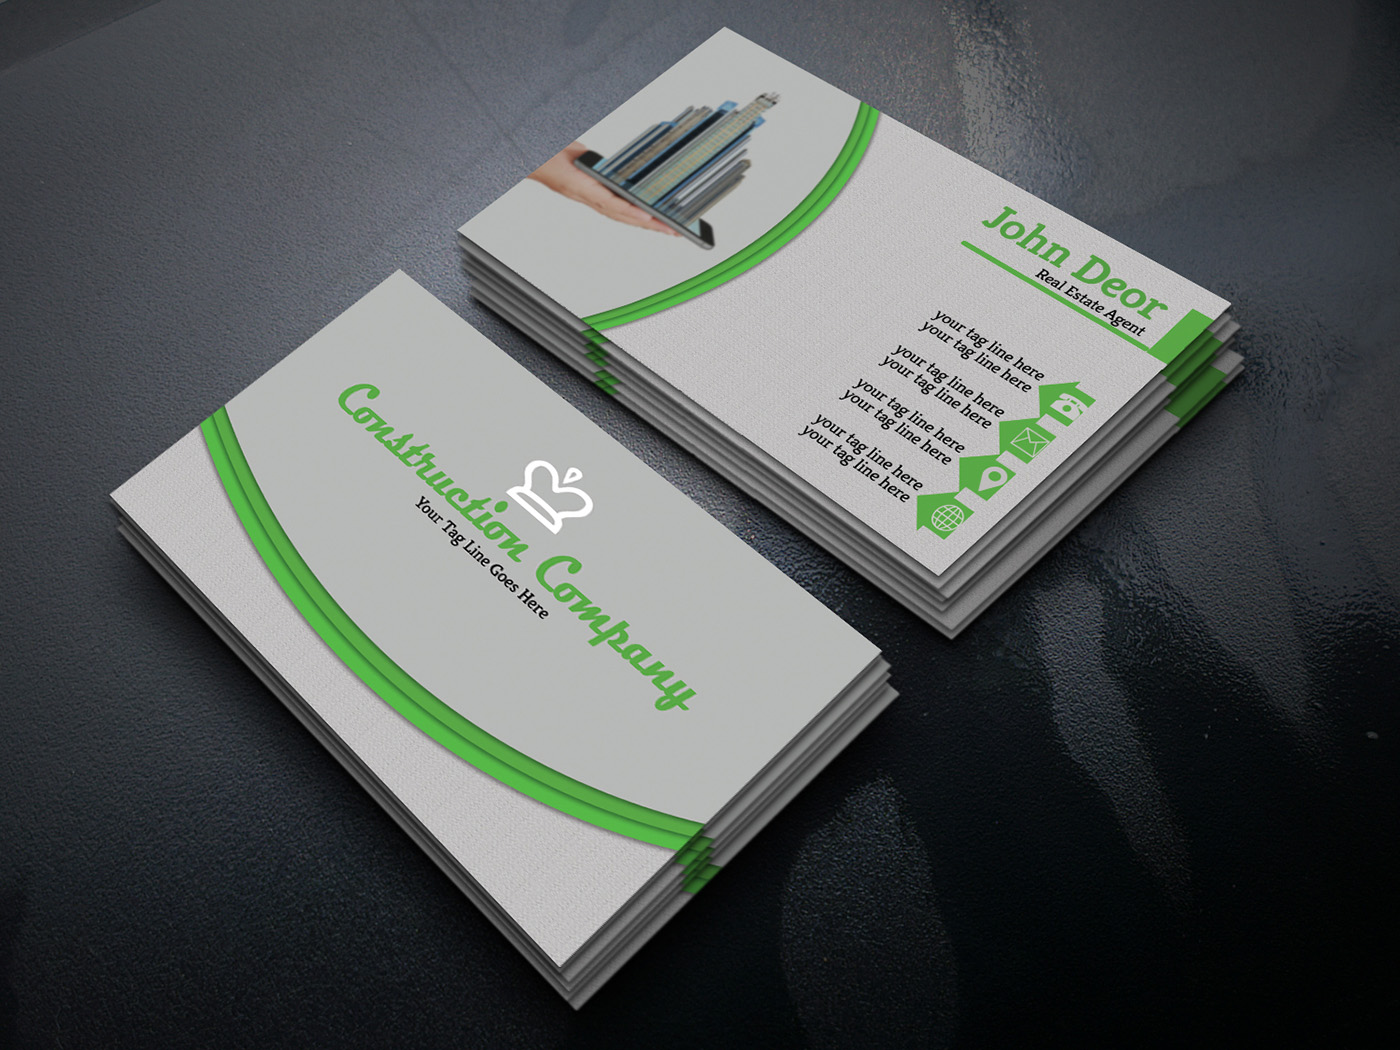 15 Best Business Card Designs 2018 - MagTemplates